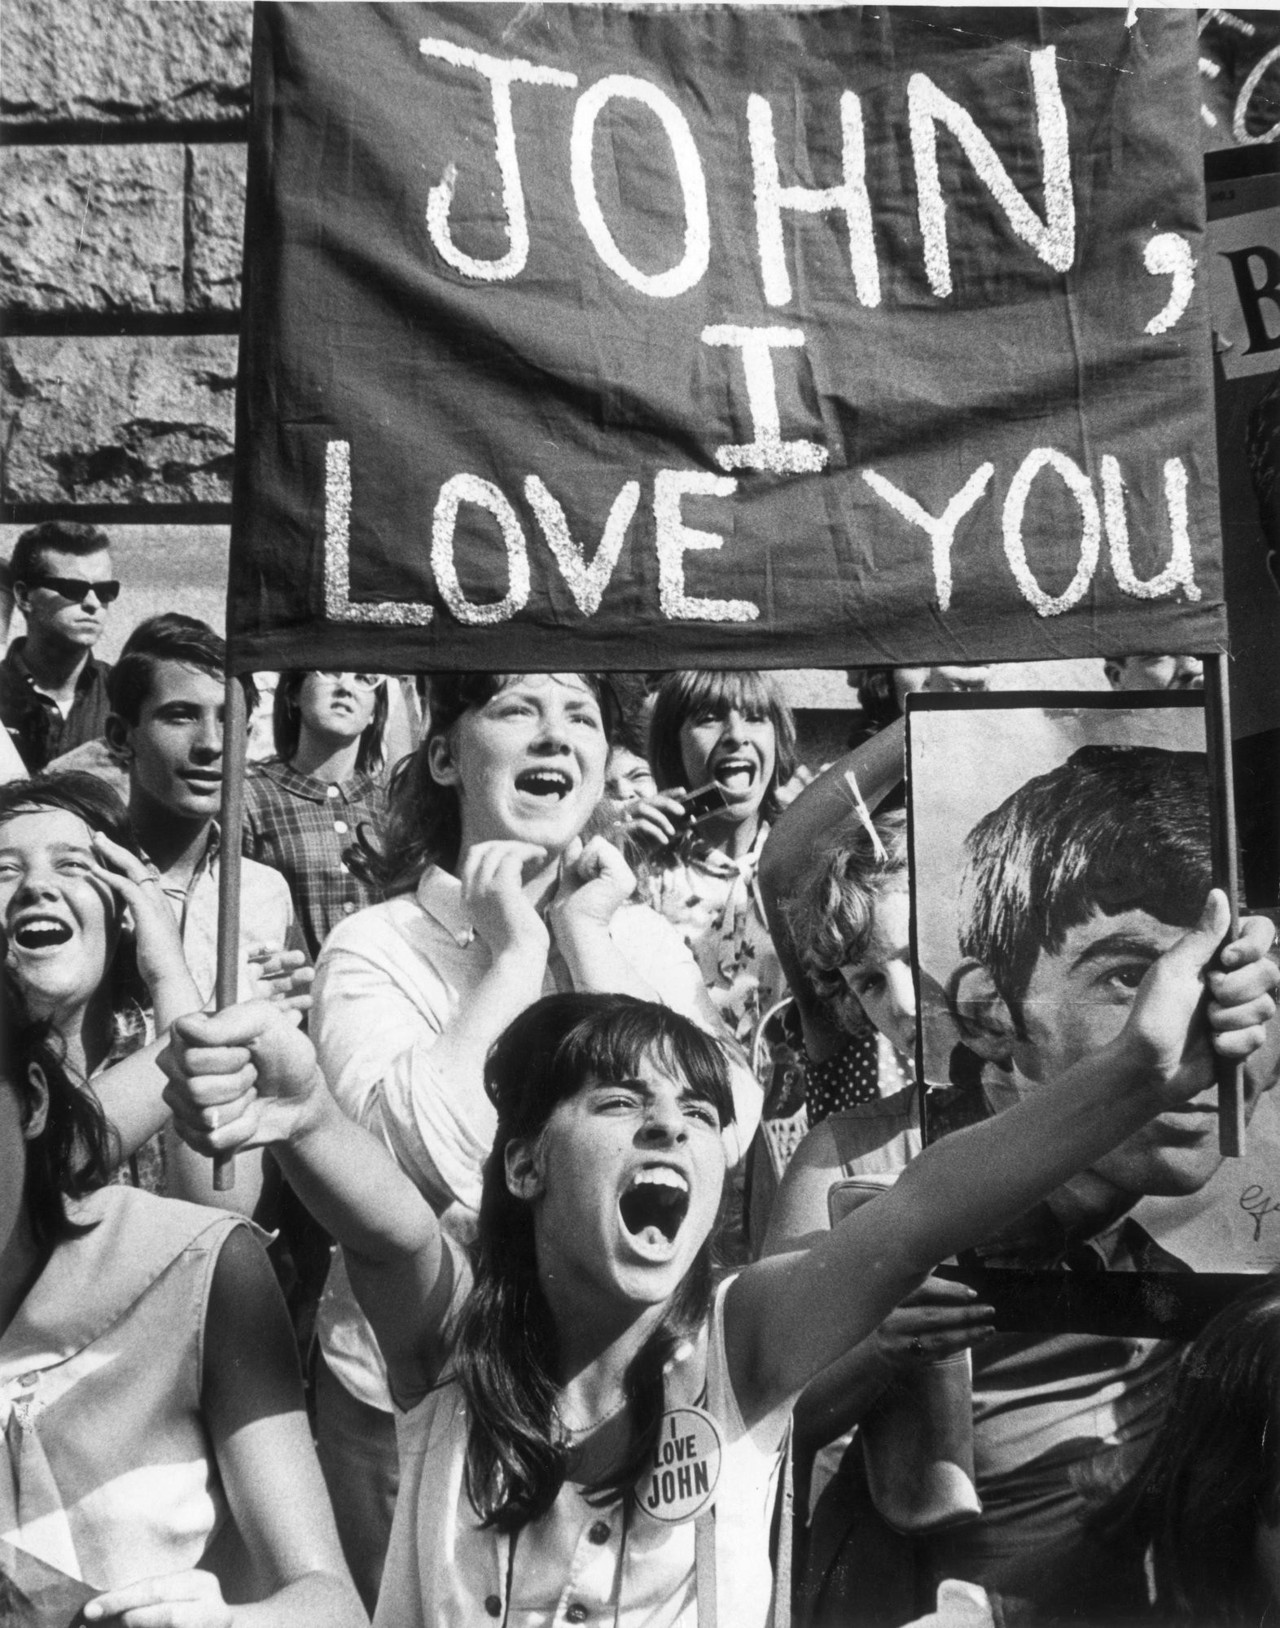 theswingingsixties:  Beatlemania  John I love you, I'm ever so fond of you Will you wait for me till I am heavenly? Oh there's much more to do But I love you Oh you're tender, you're name's a whisper I let tears fall like rain Apple sized they were over her And through all of those times when you could have died  This is what you find Theres life outside your mother's garden There's life beyond your wildest dreams There hasn't been any explosion We're not spinning like Dorothy If you look now then you will see Why don't be afraid to cry  This time dont let yourself die  John  I'll pick up those dancing shoes Kick off those wedding blues  These are the ways you can choose Child you're tender you're name's a whisper Theres life outside your mother's garden There's life beyond your wildest dreams There hasn't been any explosion We're not spinning like Dorothy If you look now then you will see Why don't be afraid to cry  This time dont let yourself die  John  I'll pick up those dancing shoes Kick off those wedding blues  These are the ways you can choose Child I love you I'm ever so fond of you